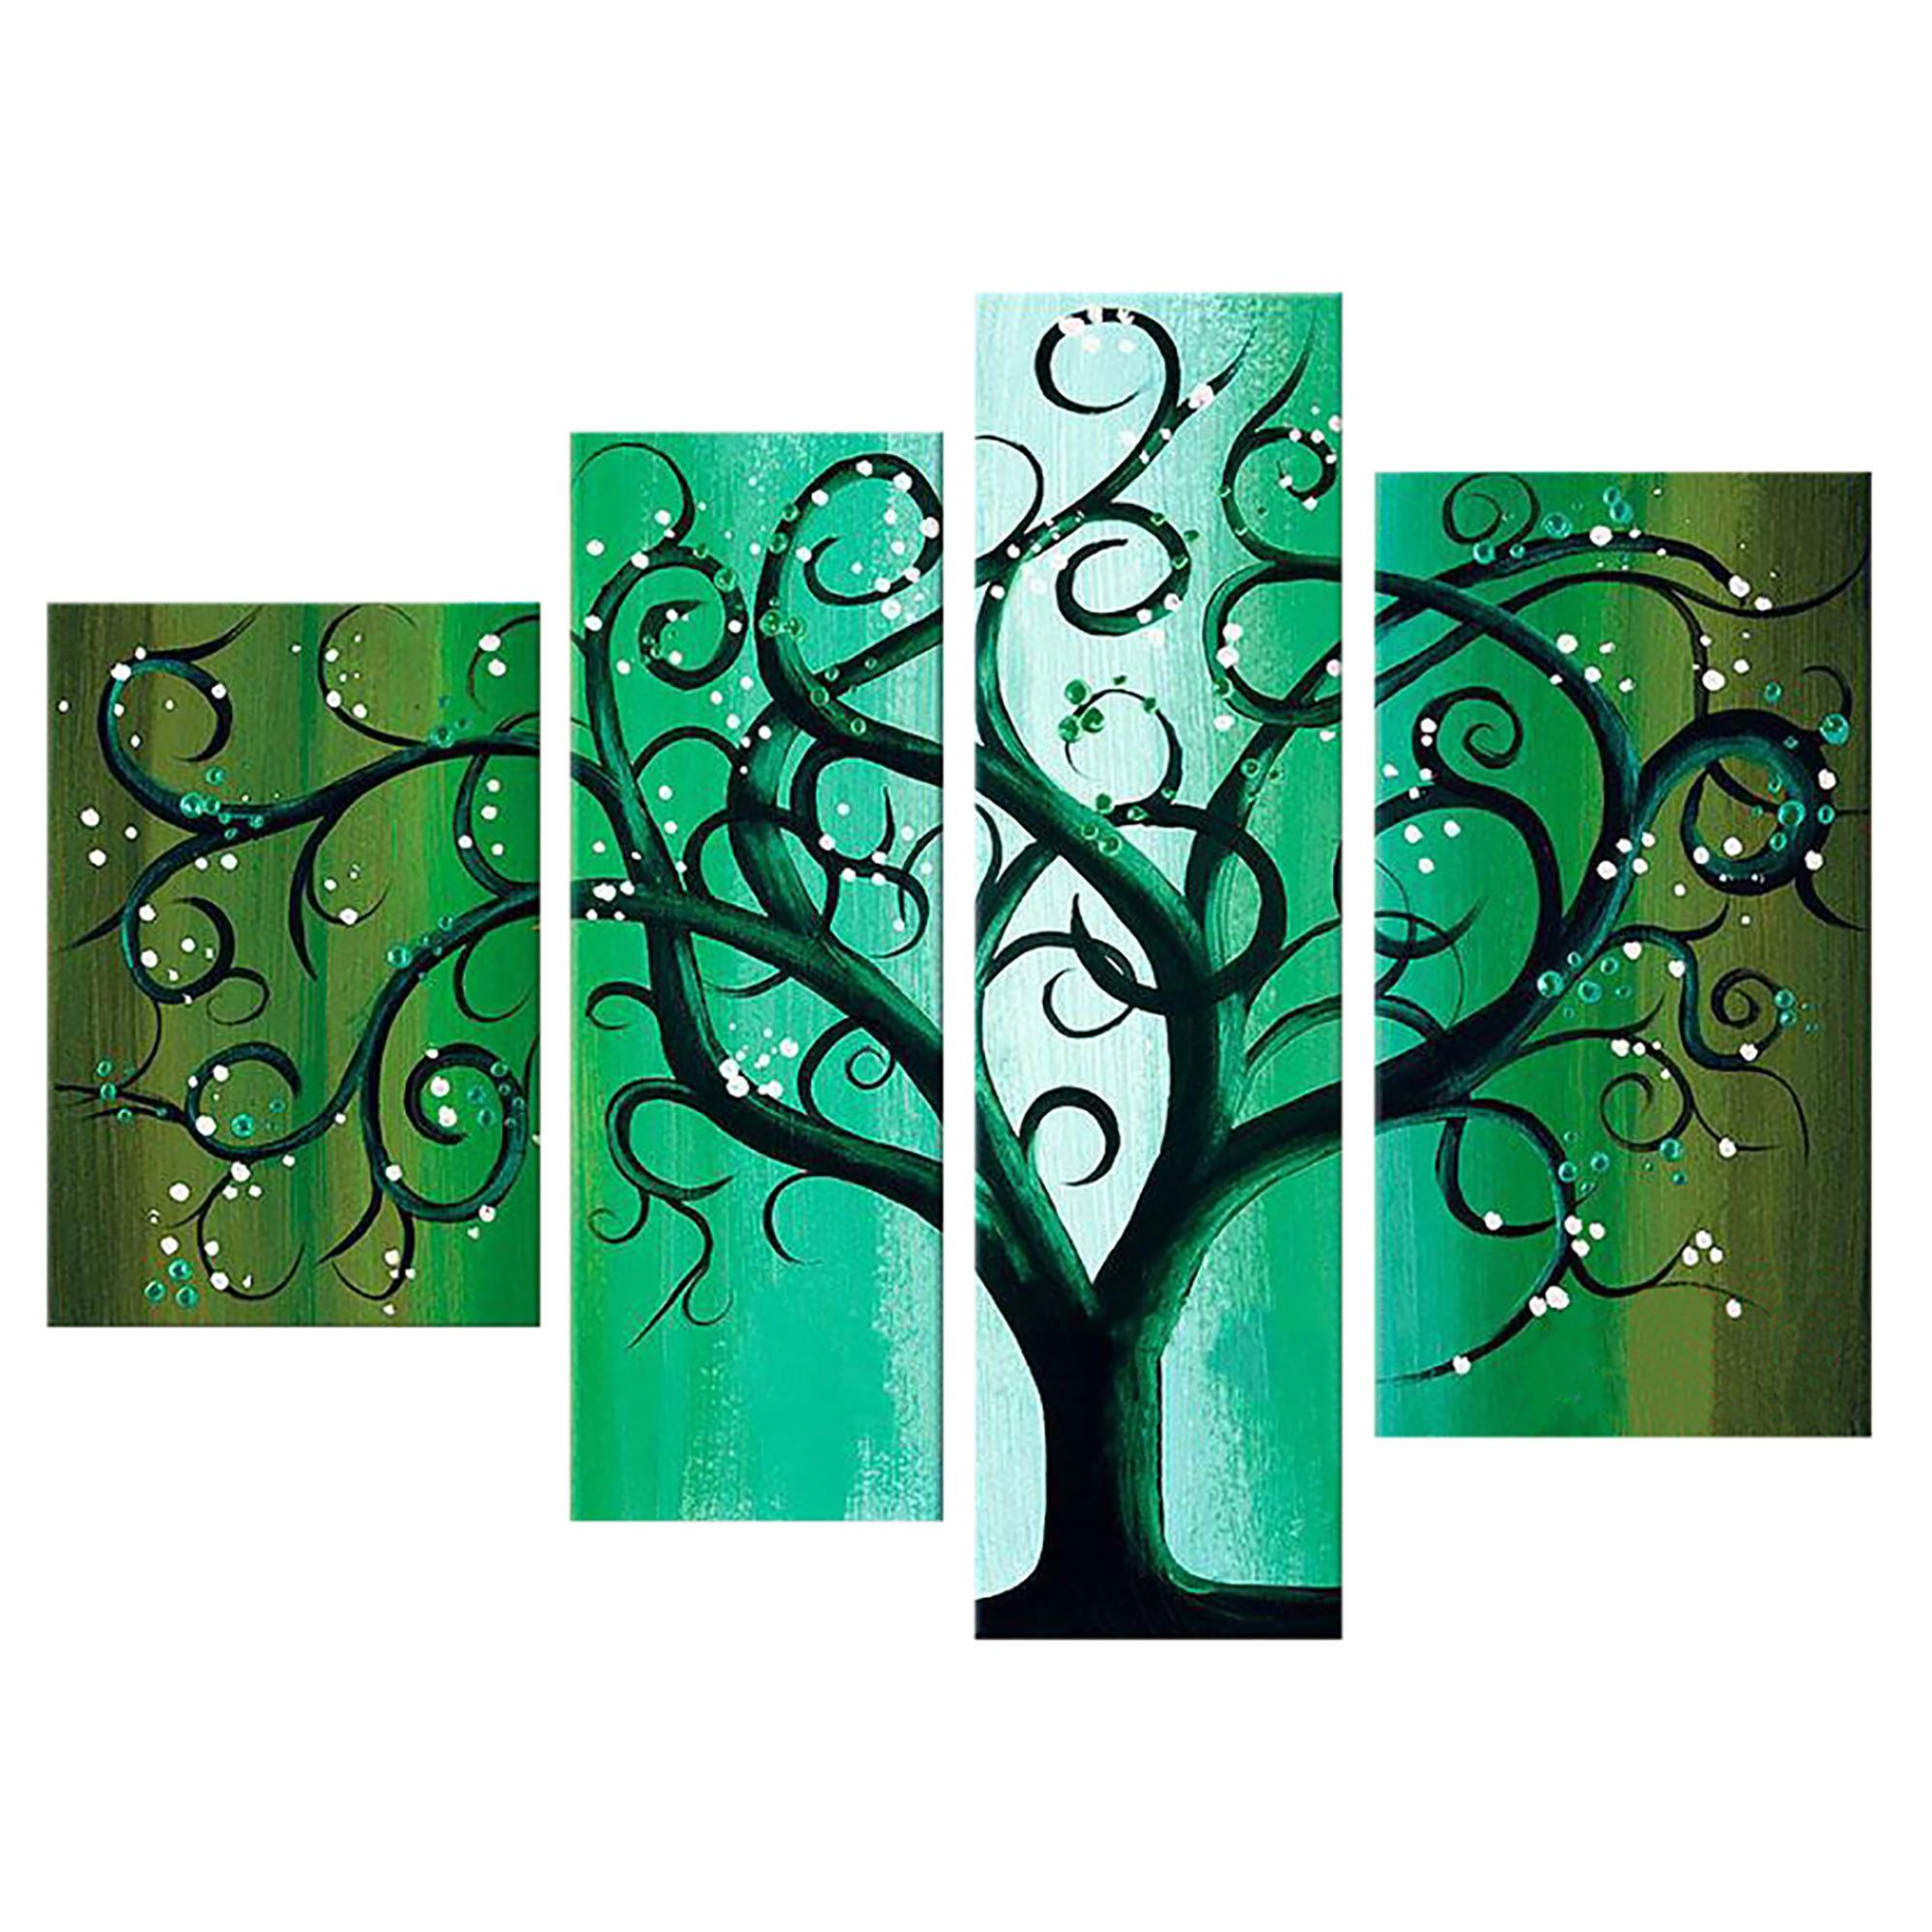 This exquisite Green Contemporary Tree Landscape Canvas Wall Art